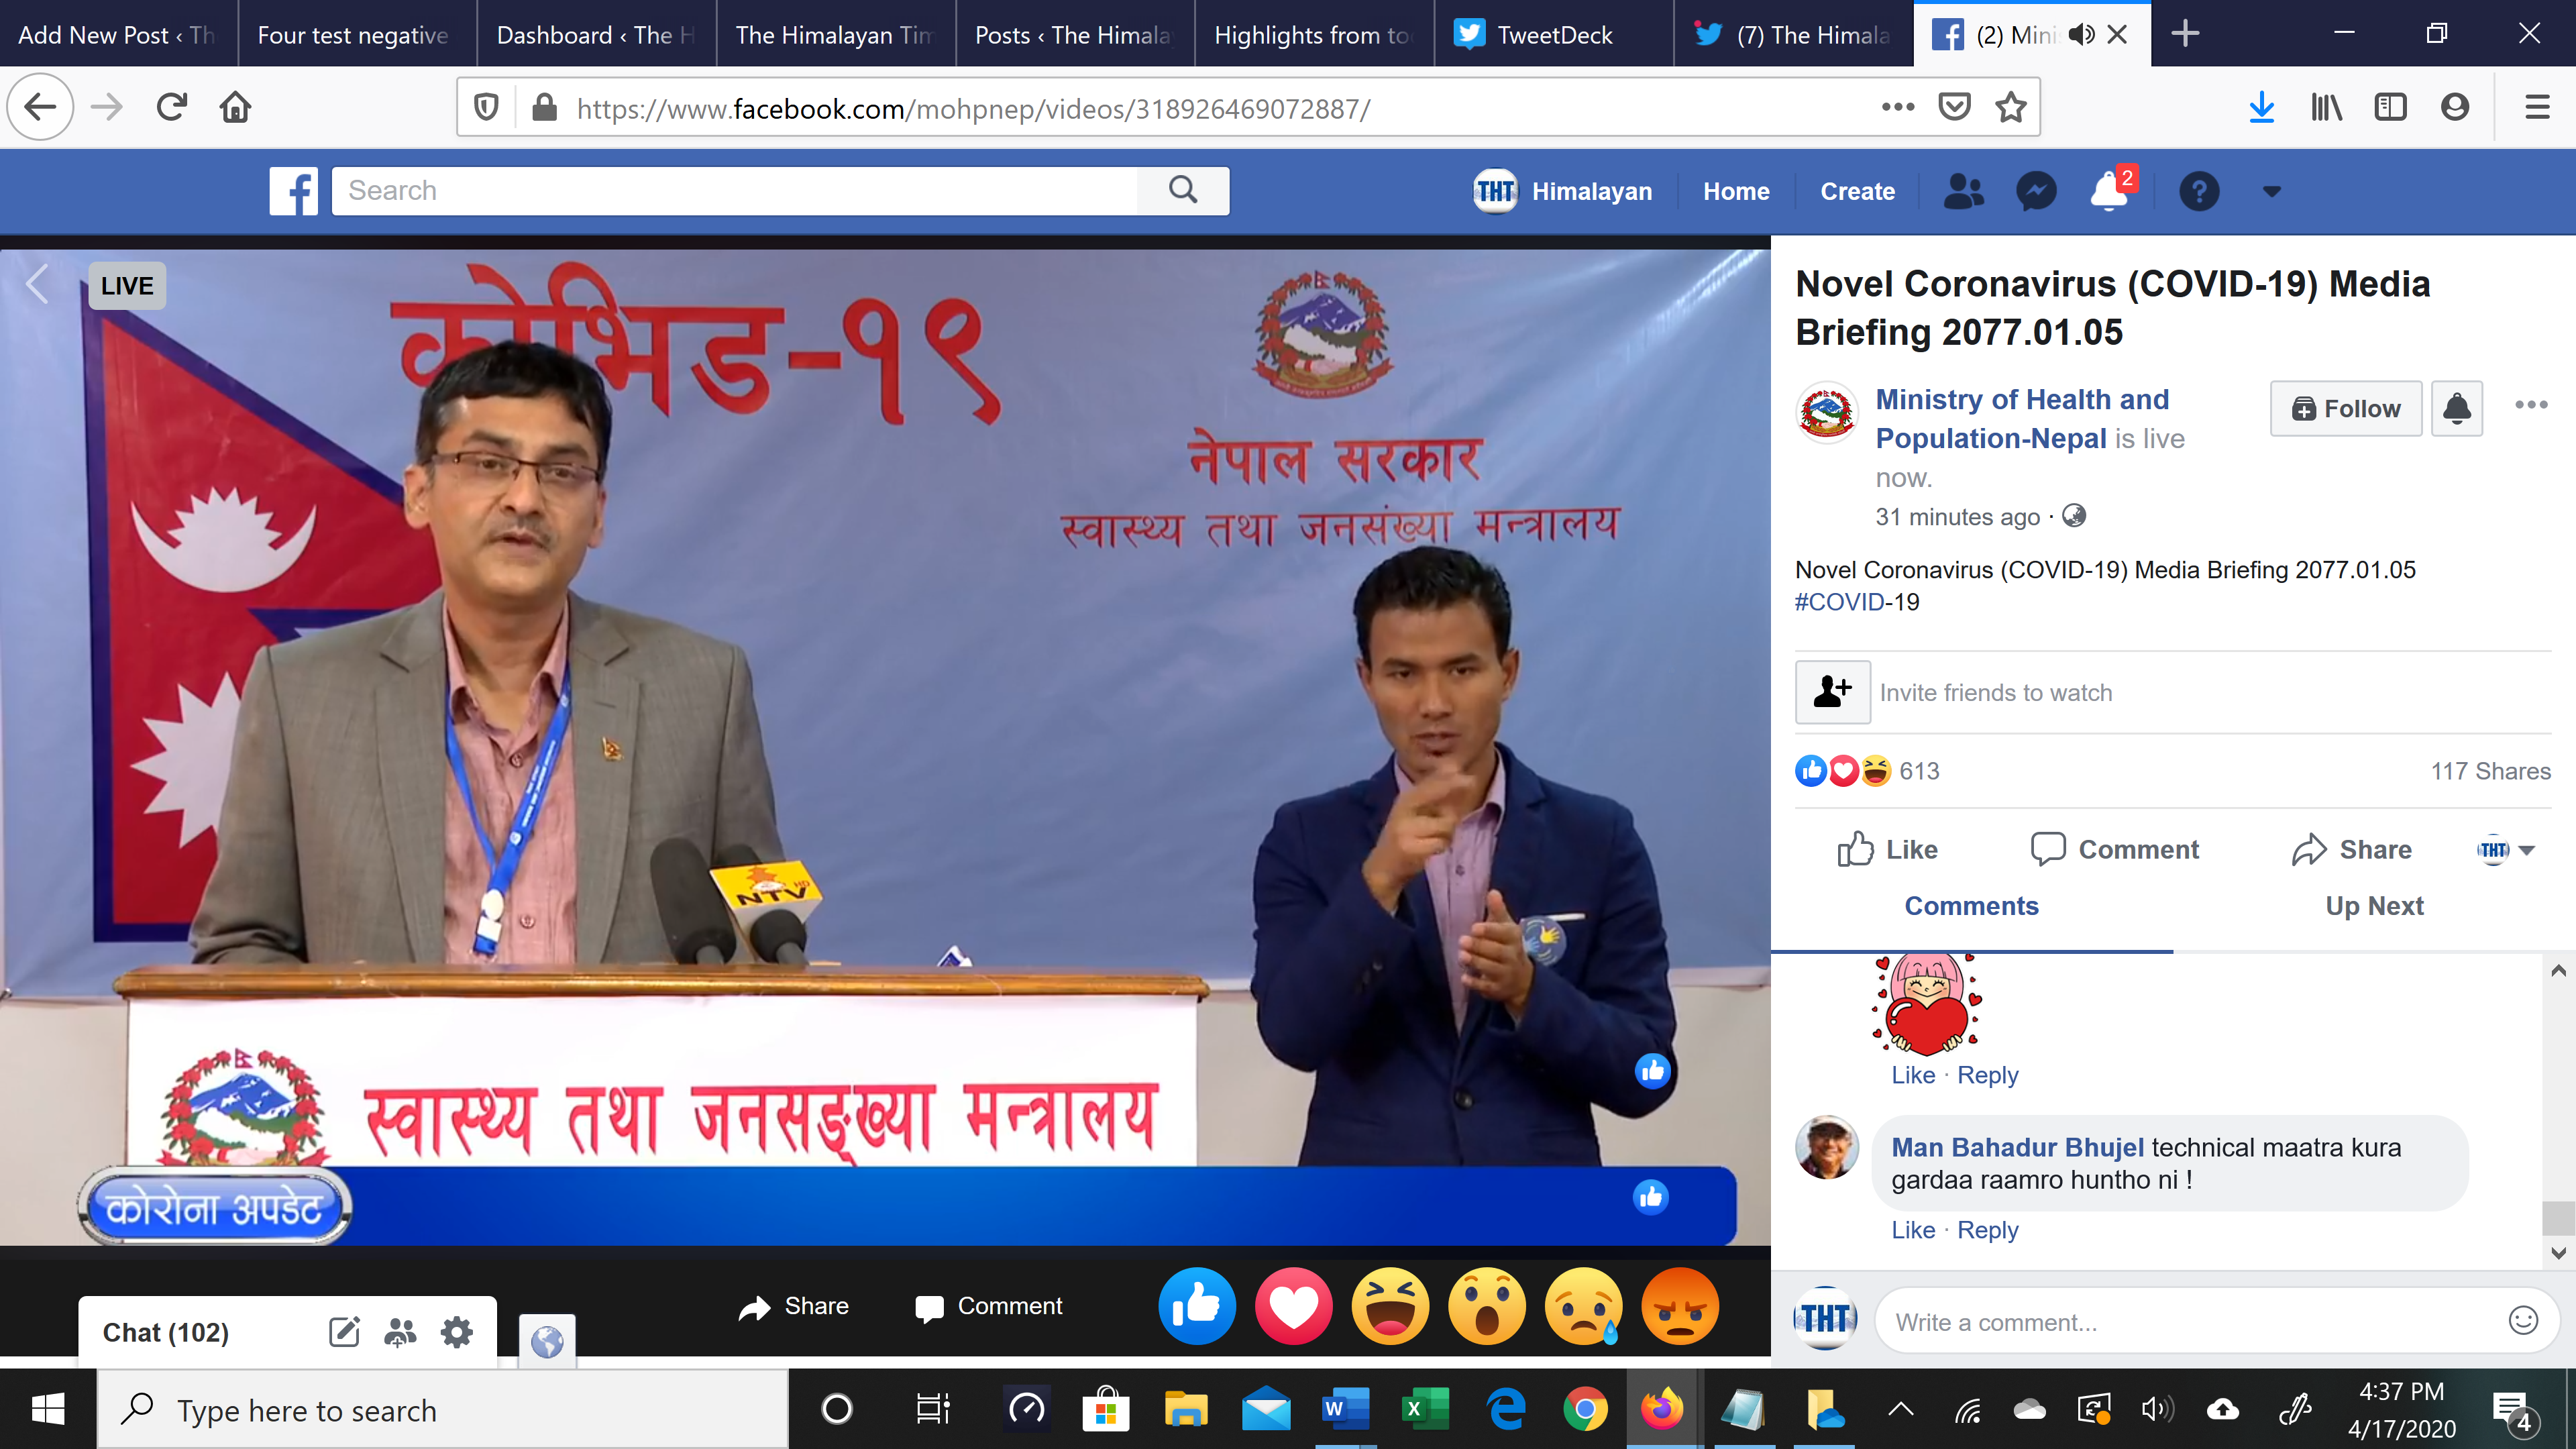 A screenshot of media briefing conducted by Ministry of Health Spokesperson Dr Bikash Devkota, on Friday, April 17, 2020.